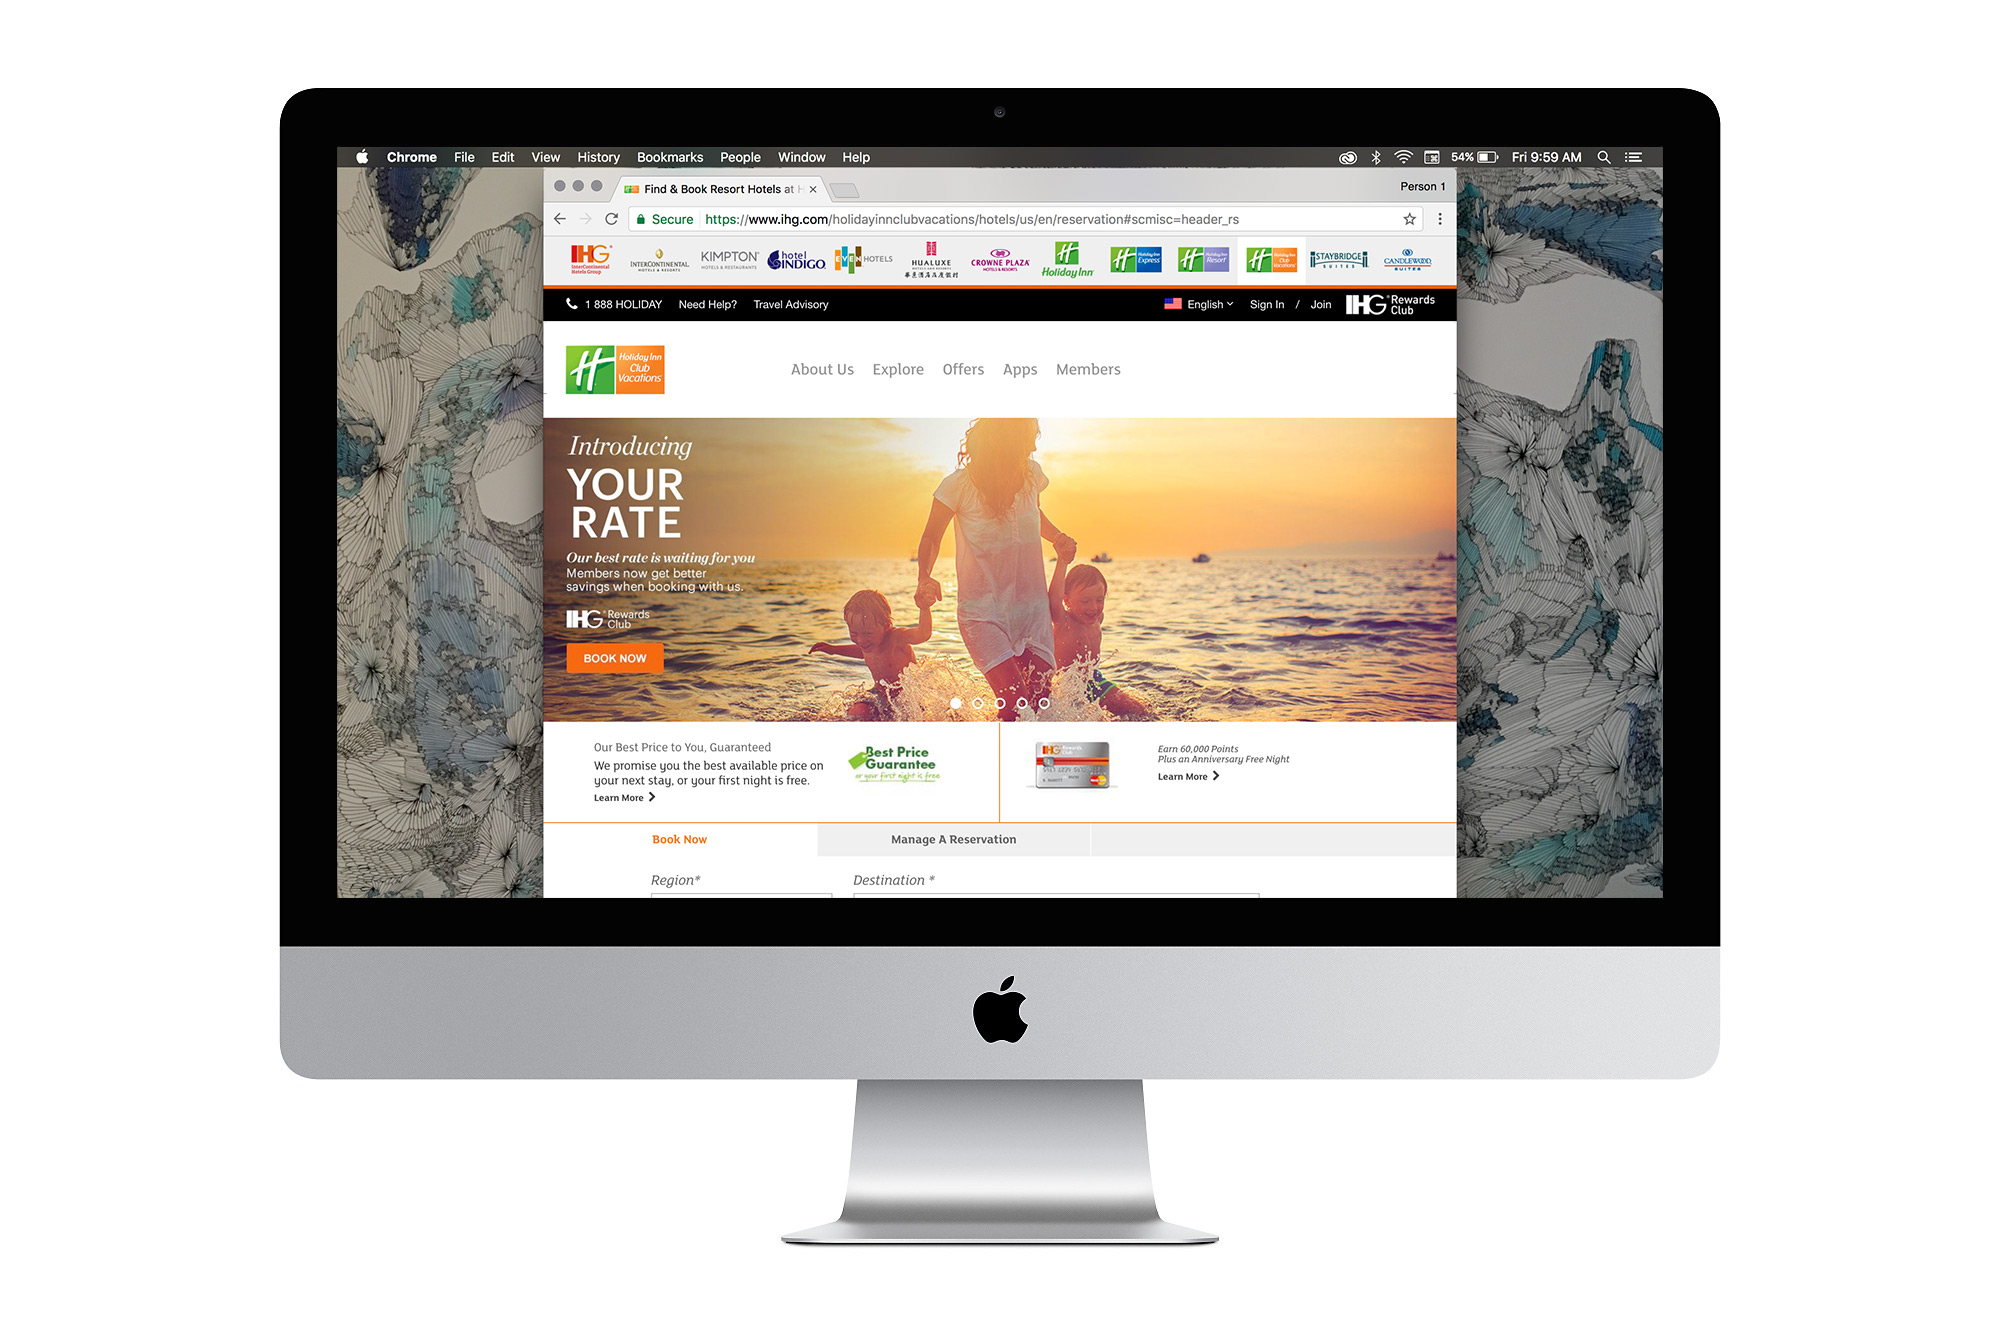 The homepage image for Holiday Inn Resorts, featuring a mom and two kids running through the waves on a beach.